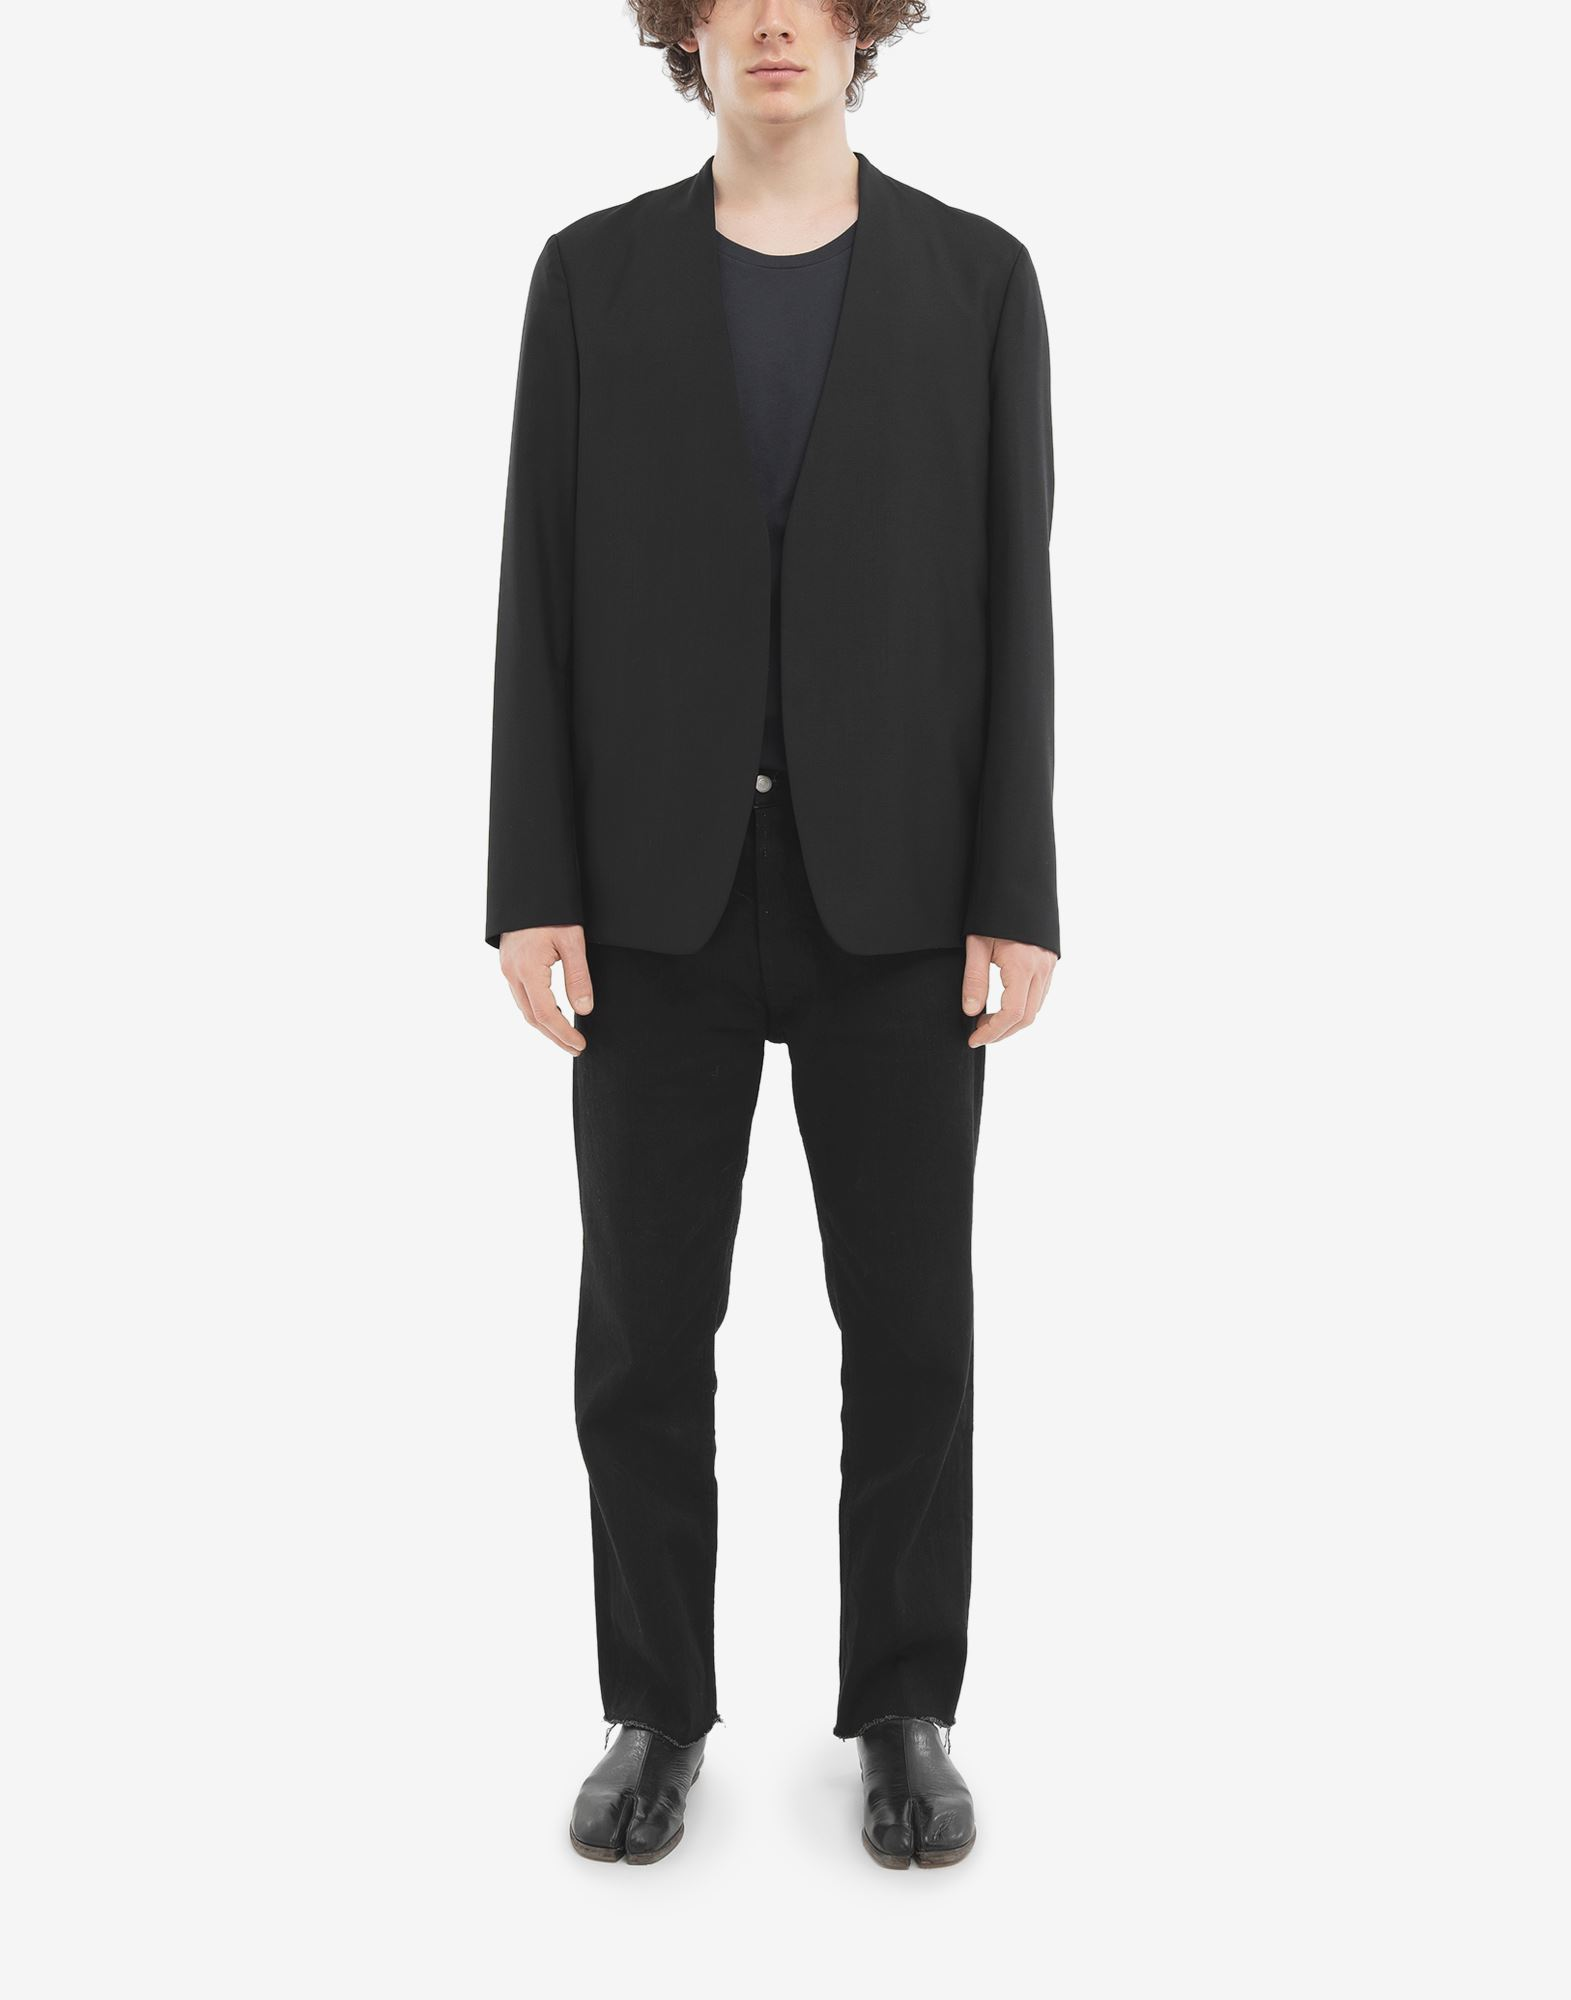 MAISON MARGIELA Collarless wool poplin jacket Blazer Man d